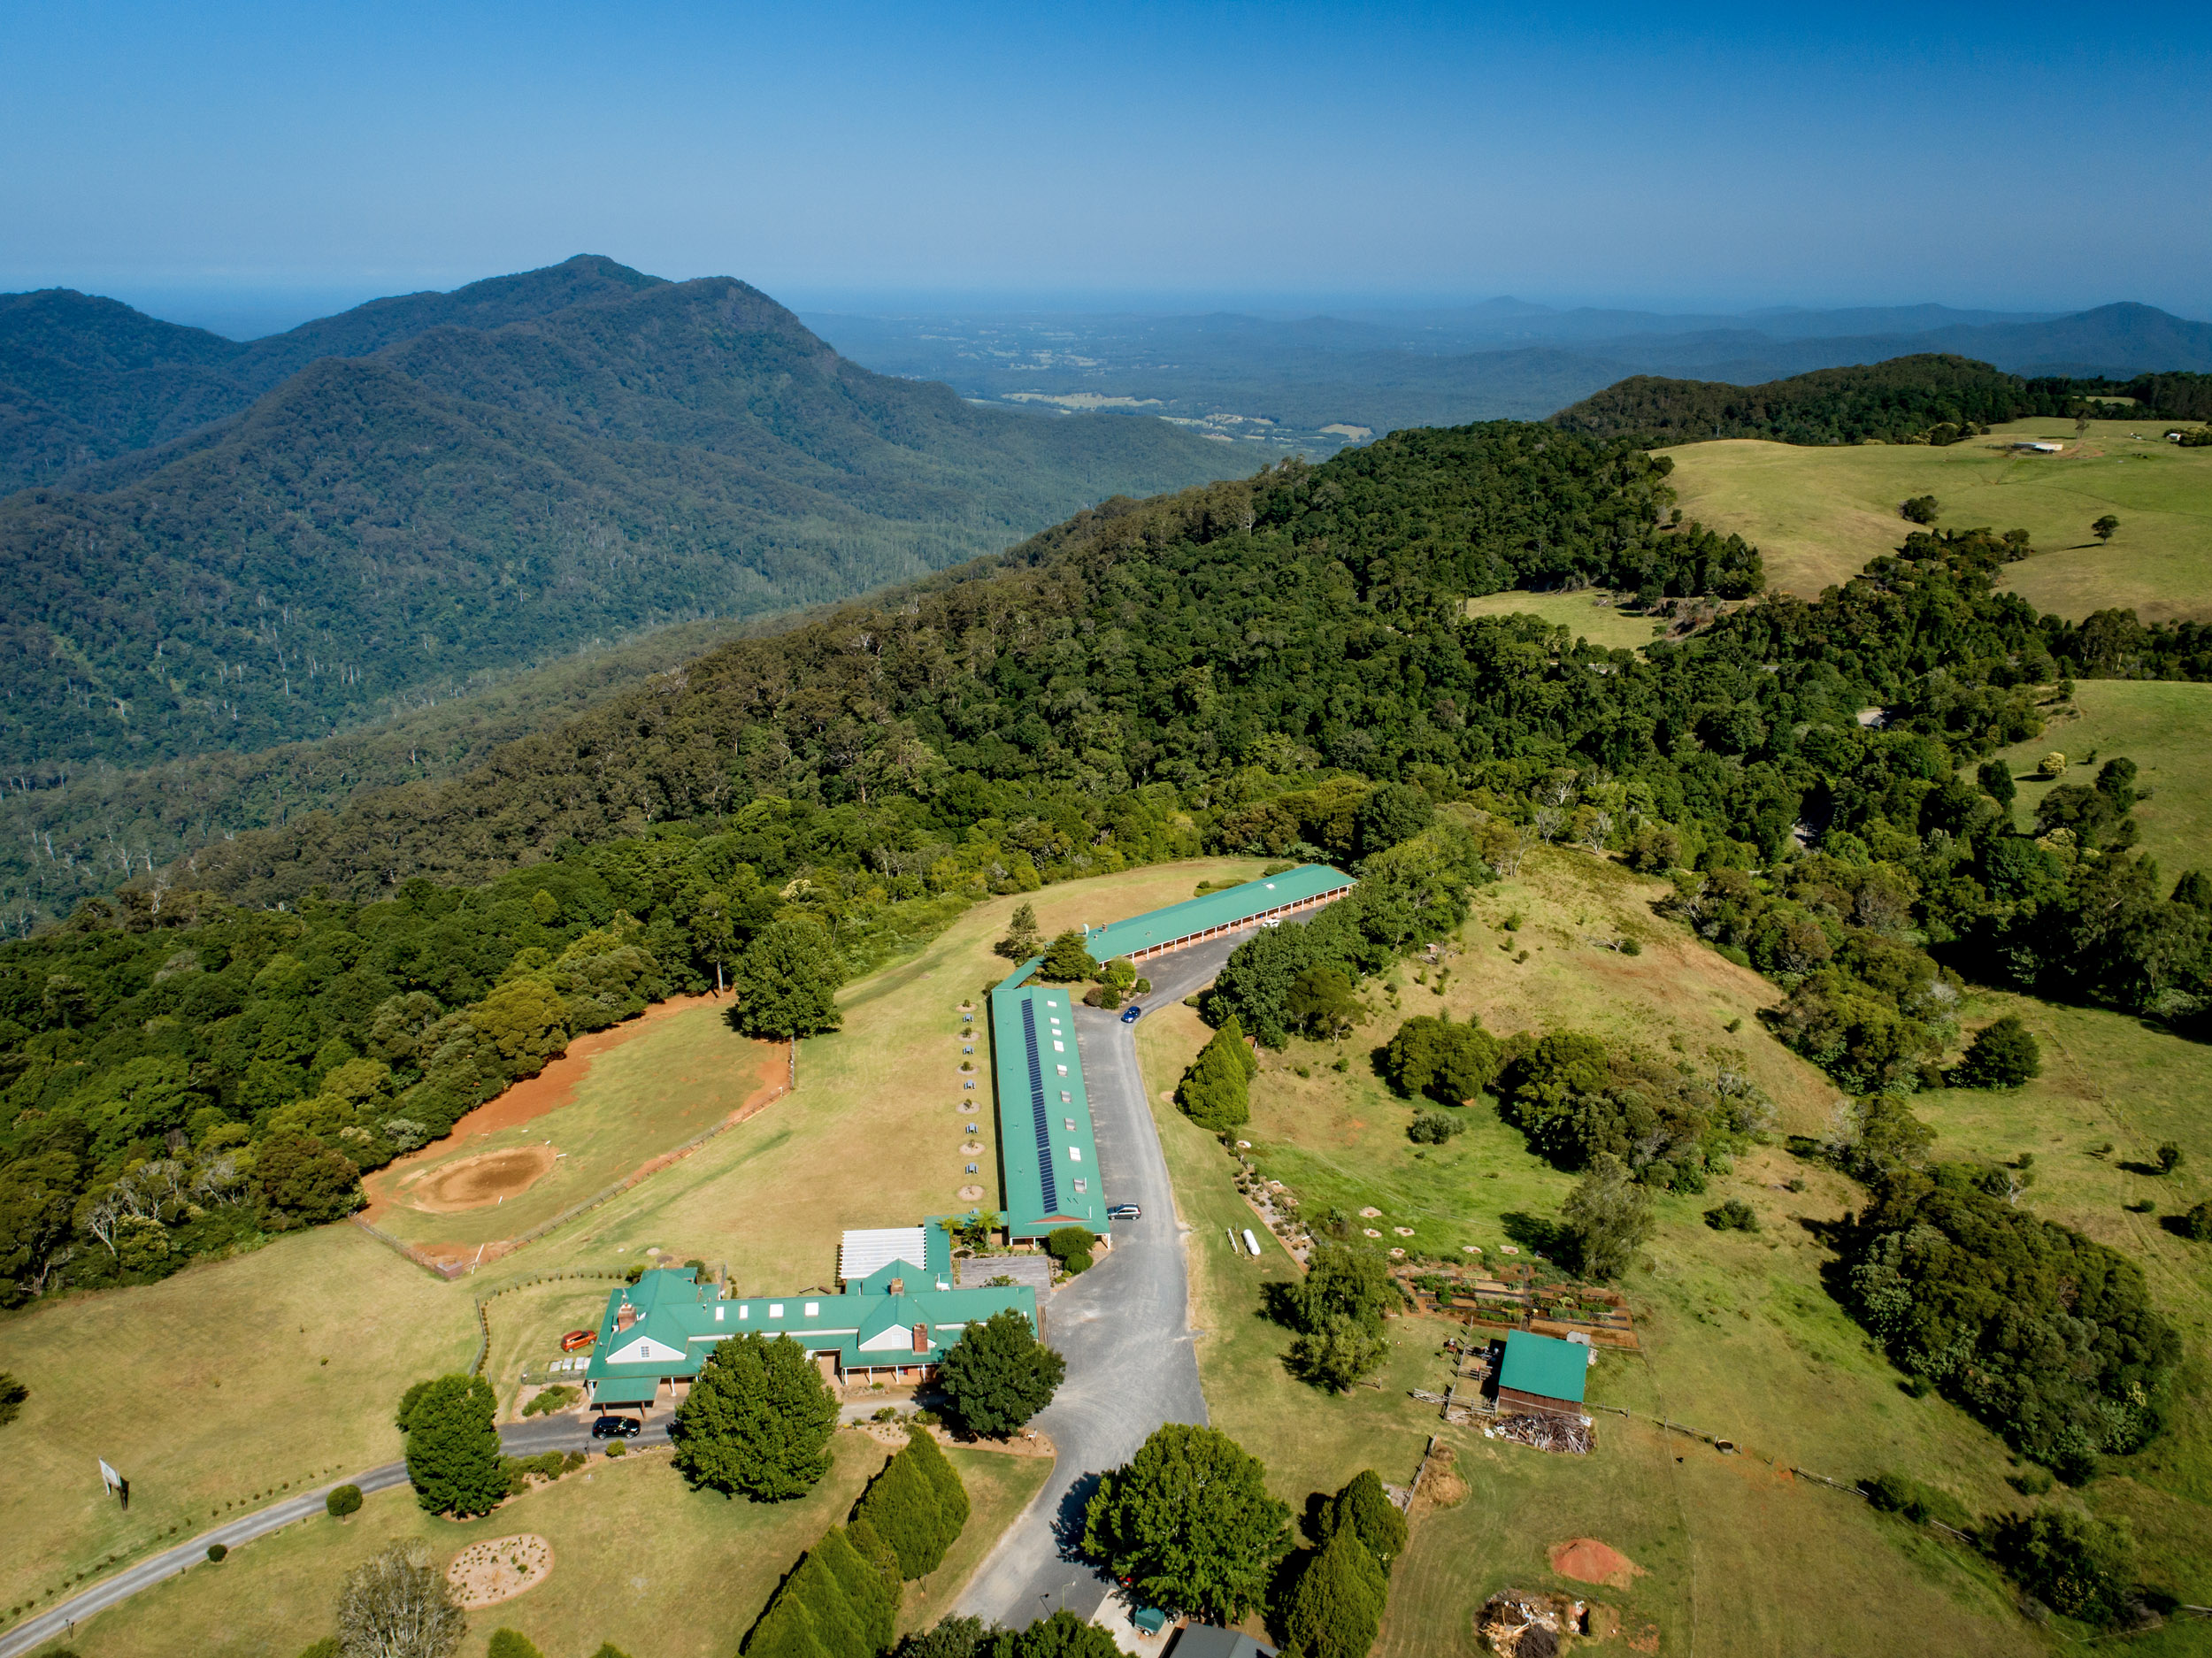 drone photo of dorrigo mountain retreat.jpg